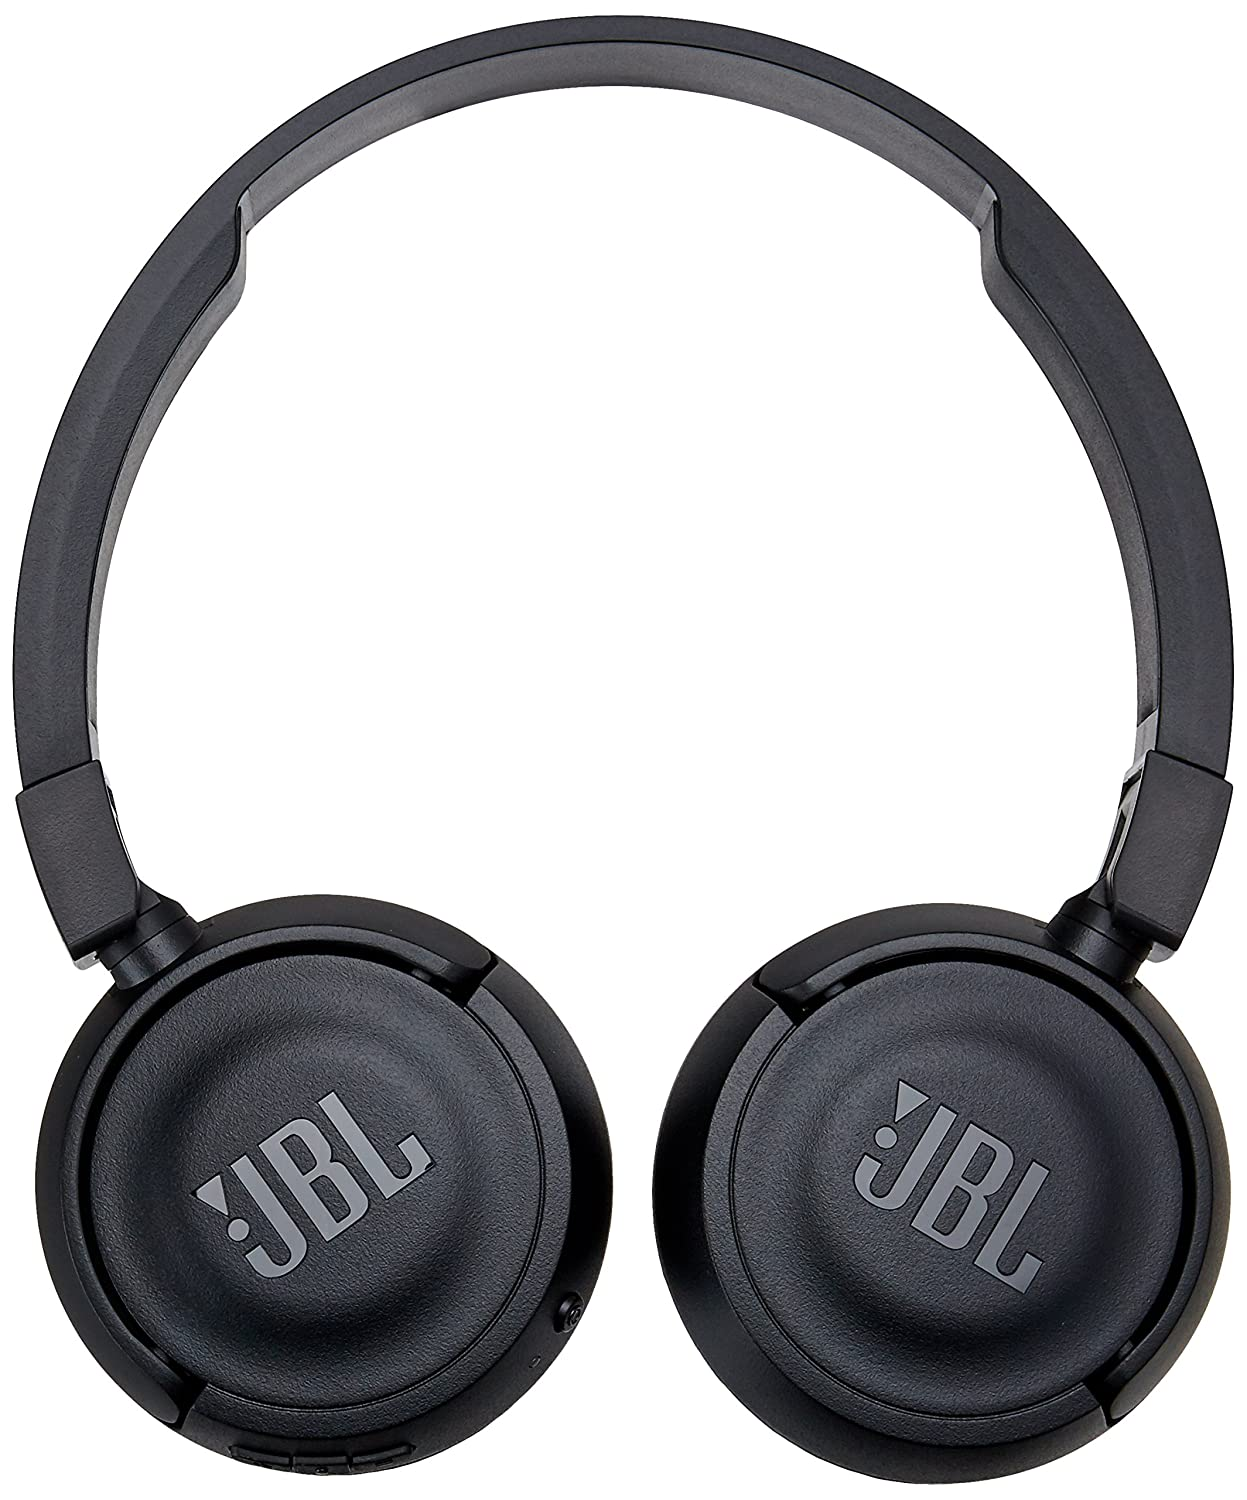 Amazon.com  JBL T450BT Wireless On-Ear Headphones with Built-in Remote and  Microphone (Black)  Electronics 42202cb65e